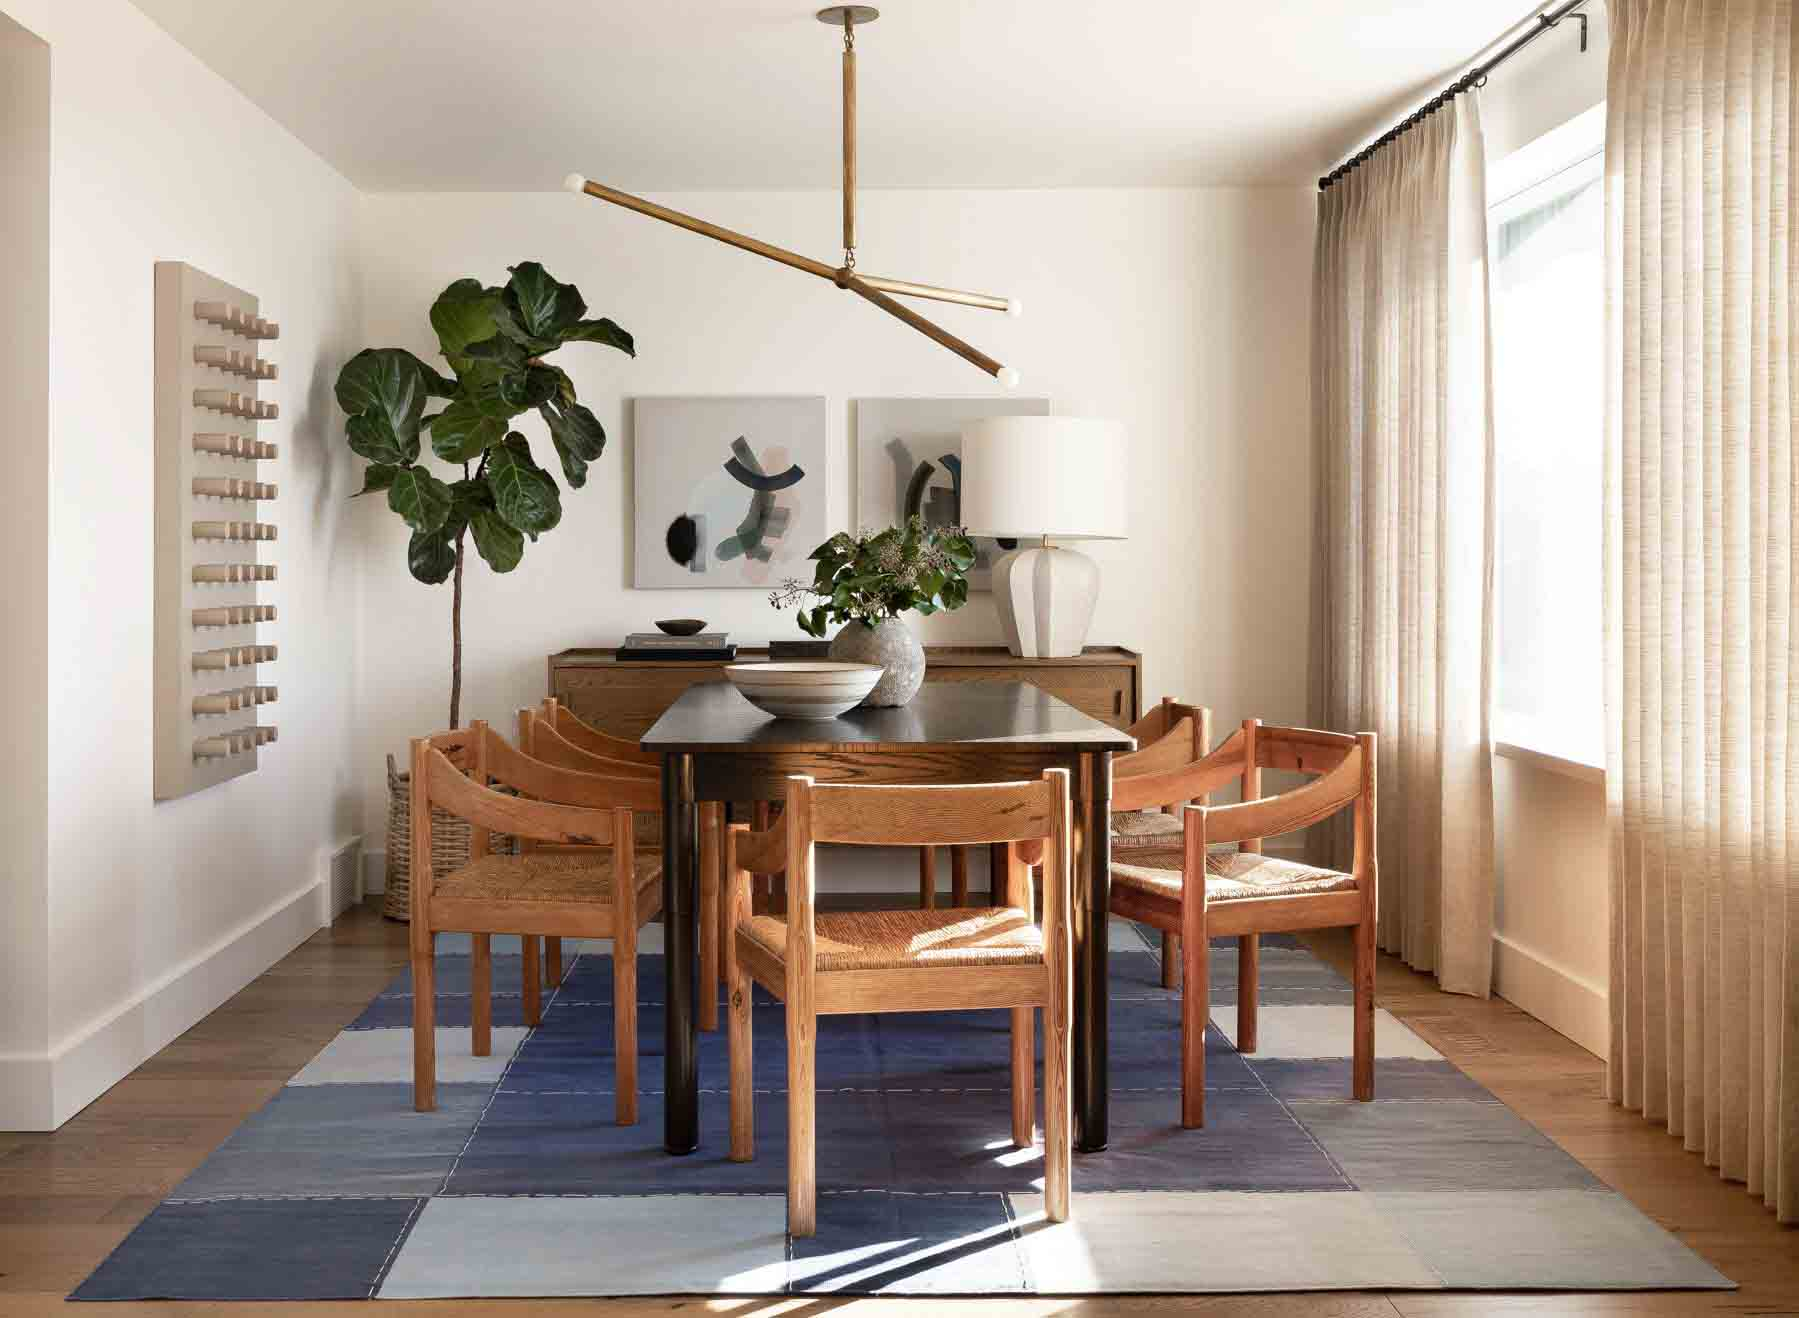 Hardwood Floor in Dining Room with Blue Area Rug